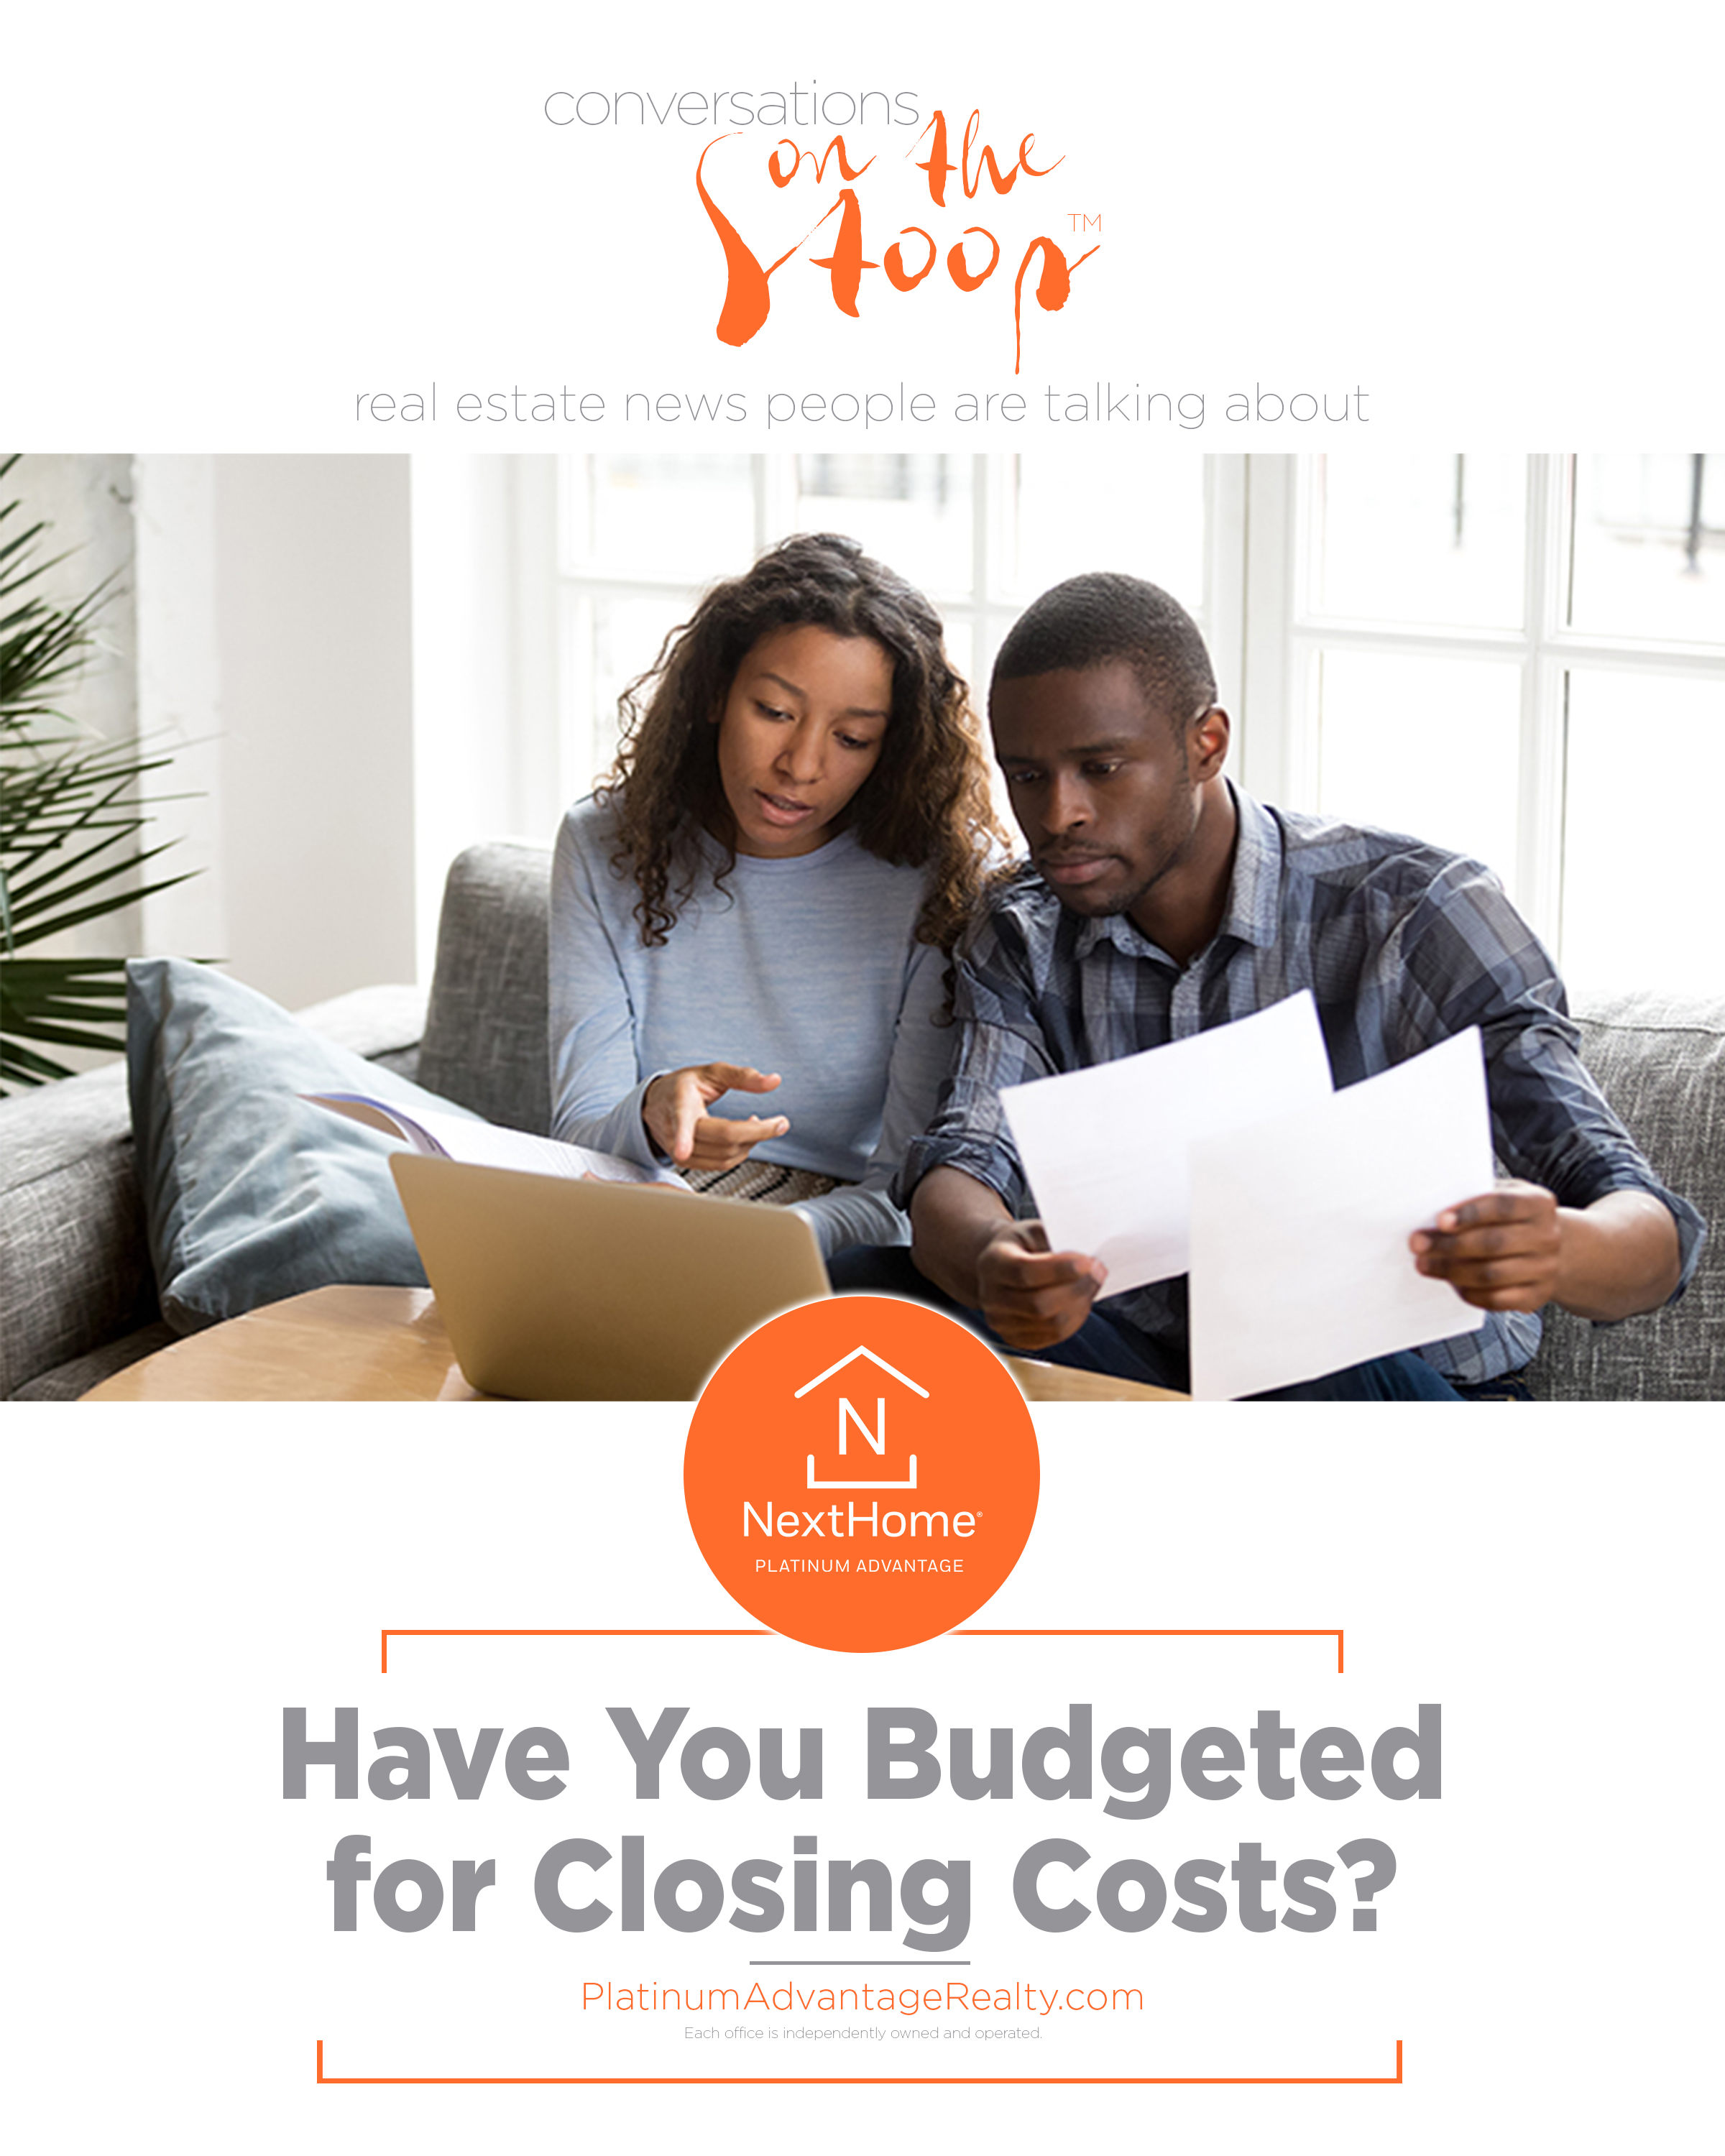 Have You Budgeted for Closing Costs?